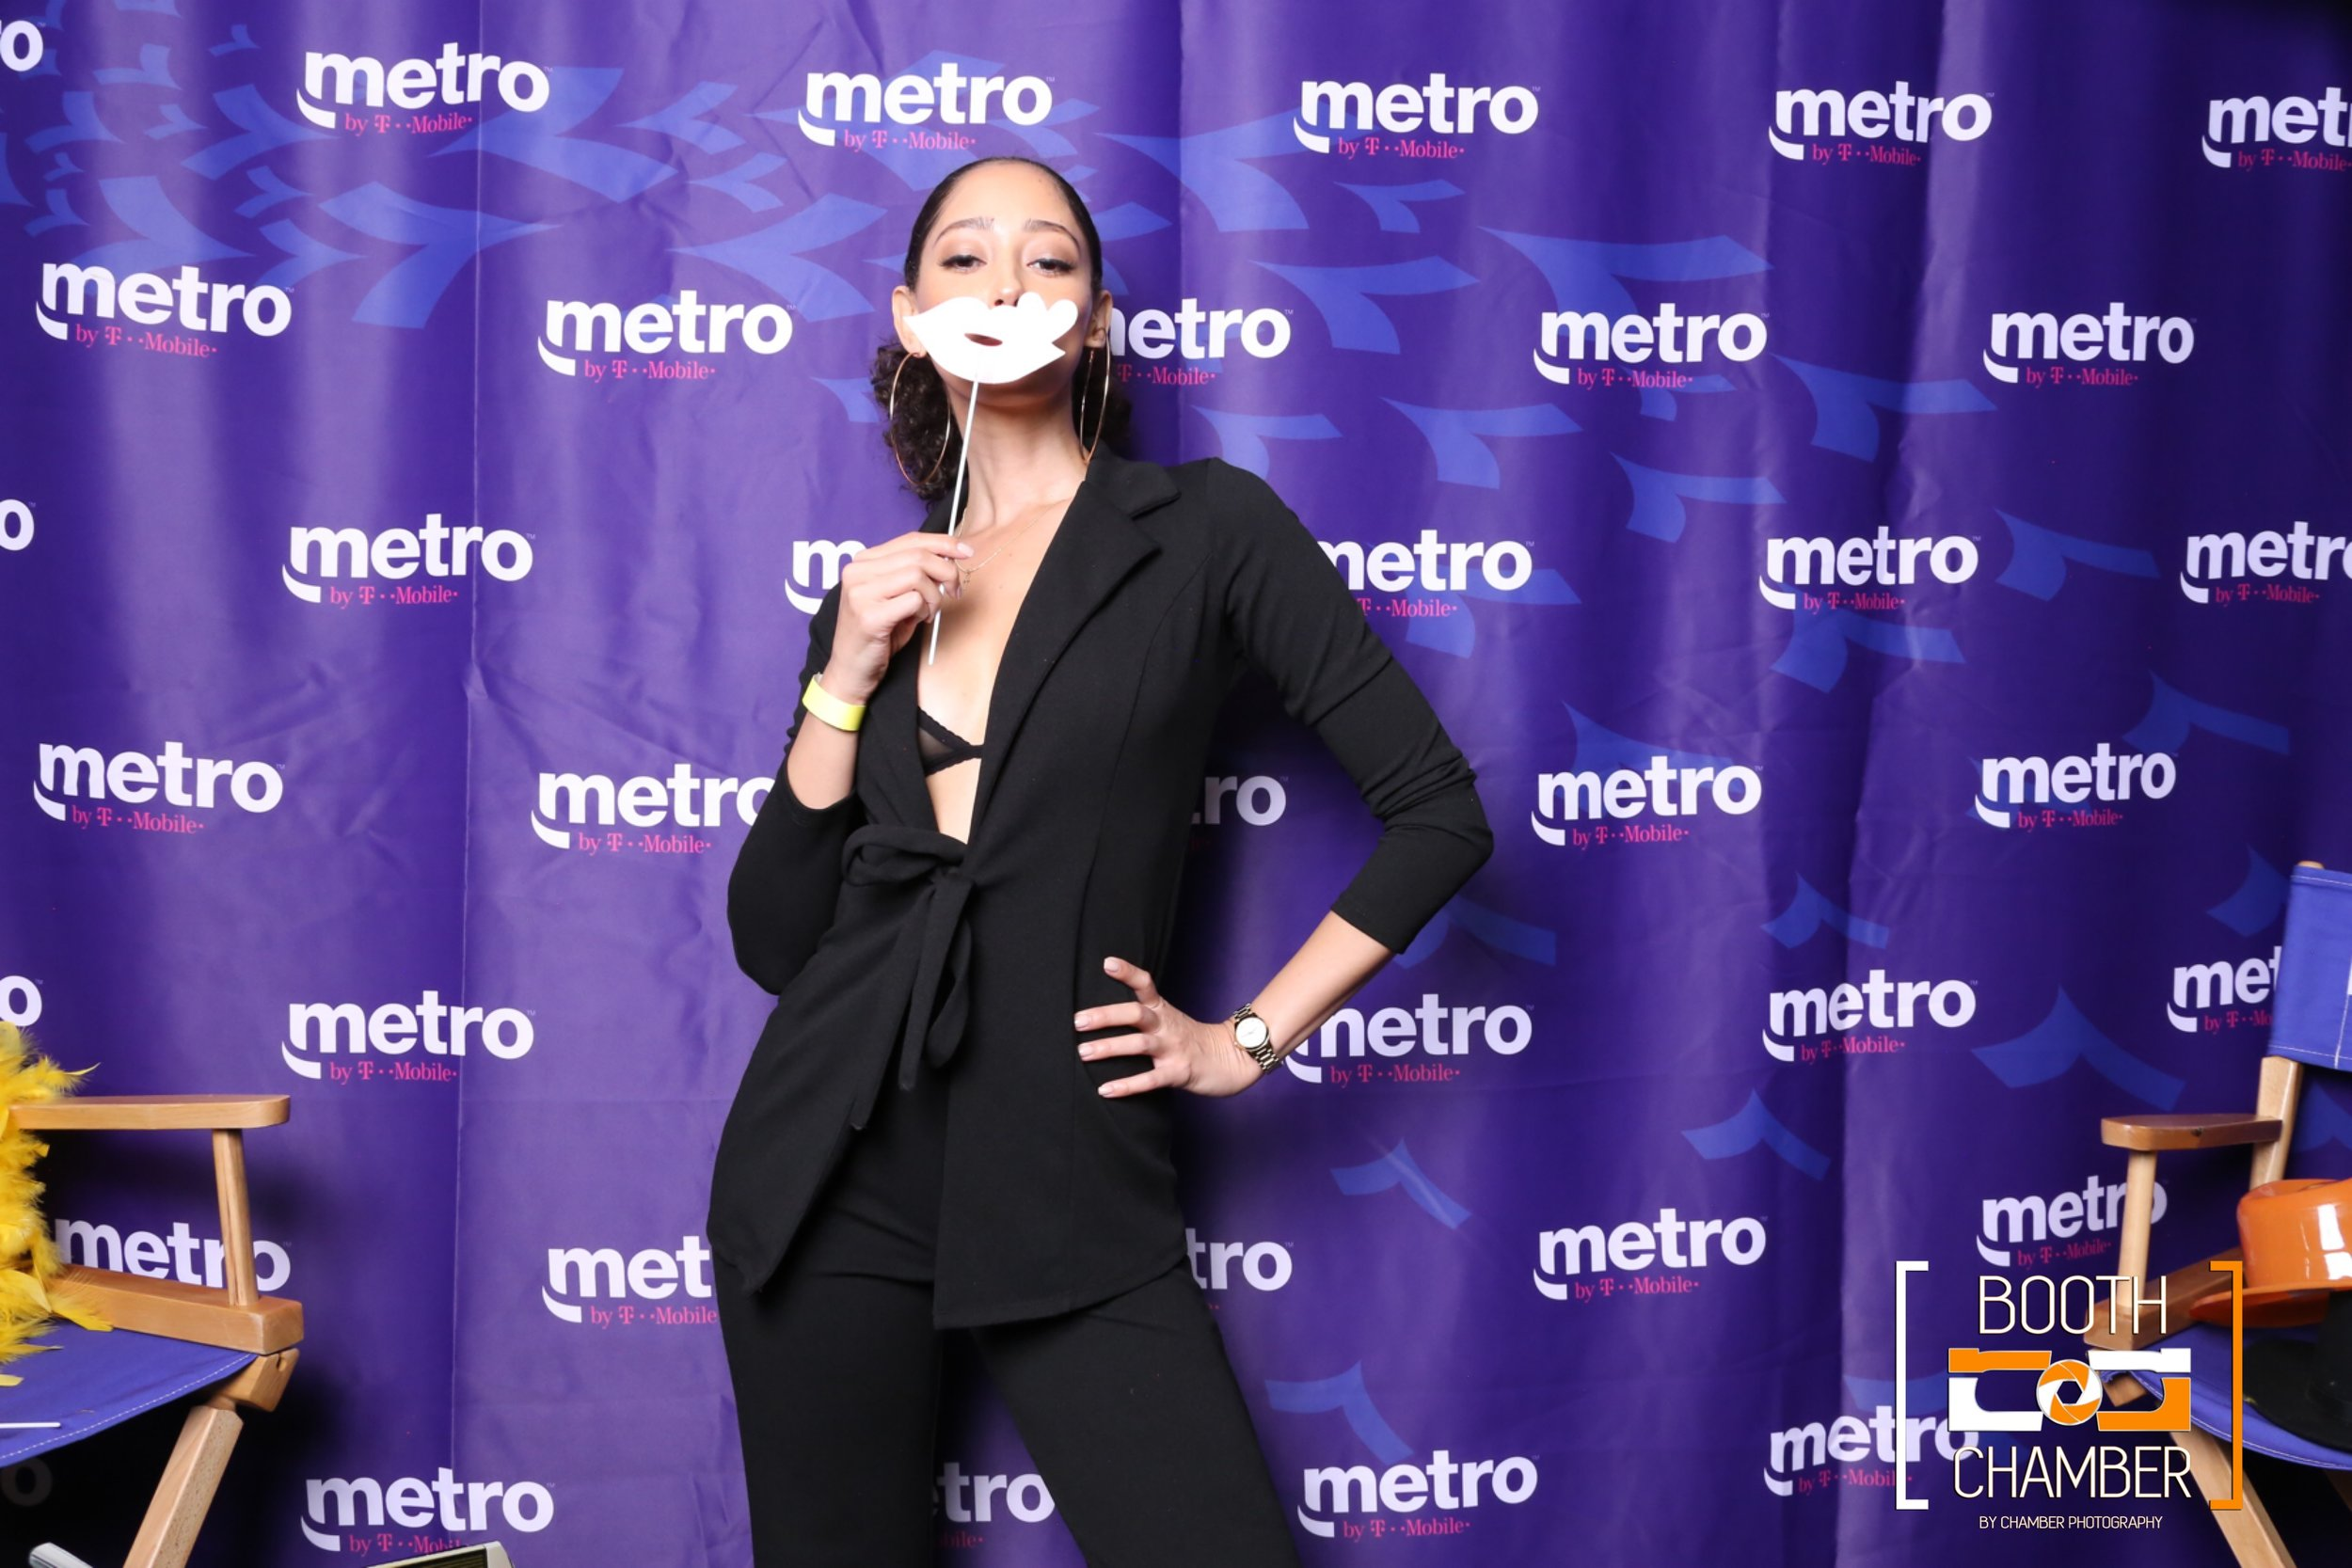 Booth Chamber Photo Booth Beat the Runway Antoine Hart Orlando _3 (6).jpeg